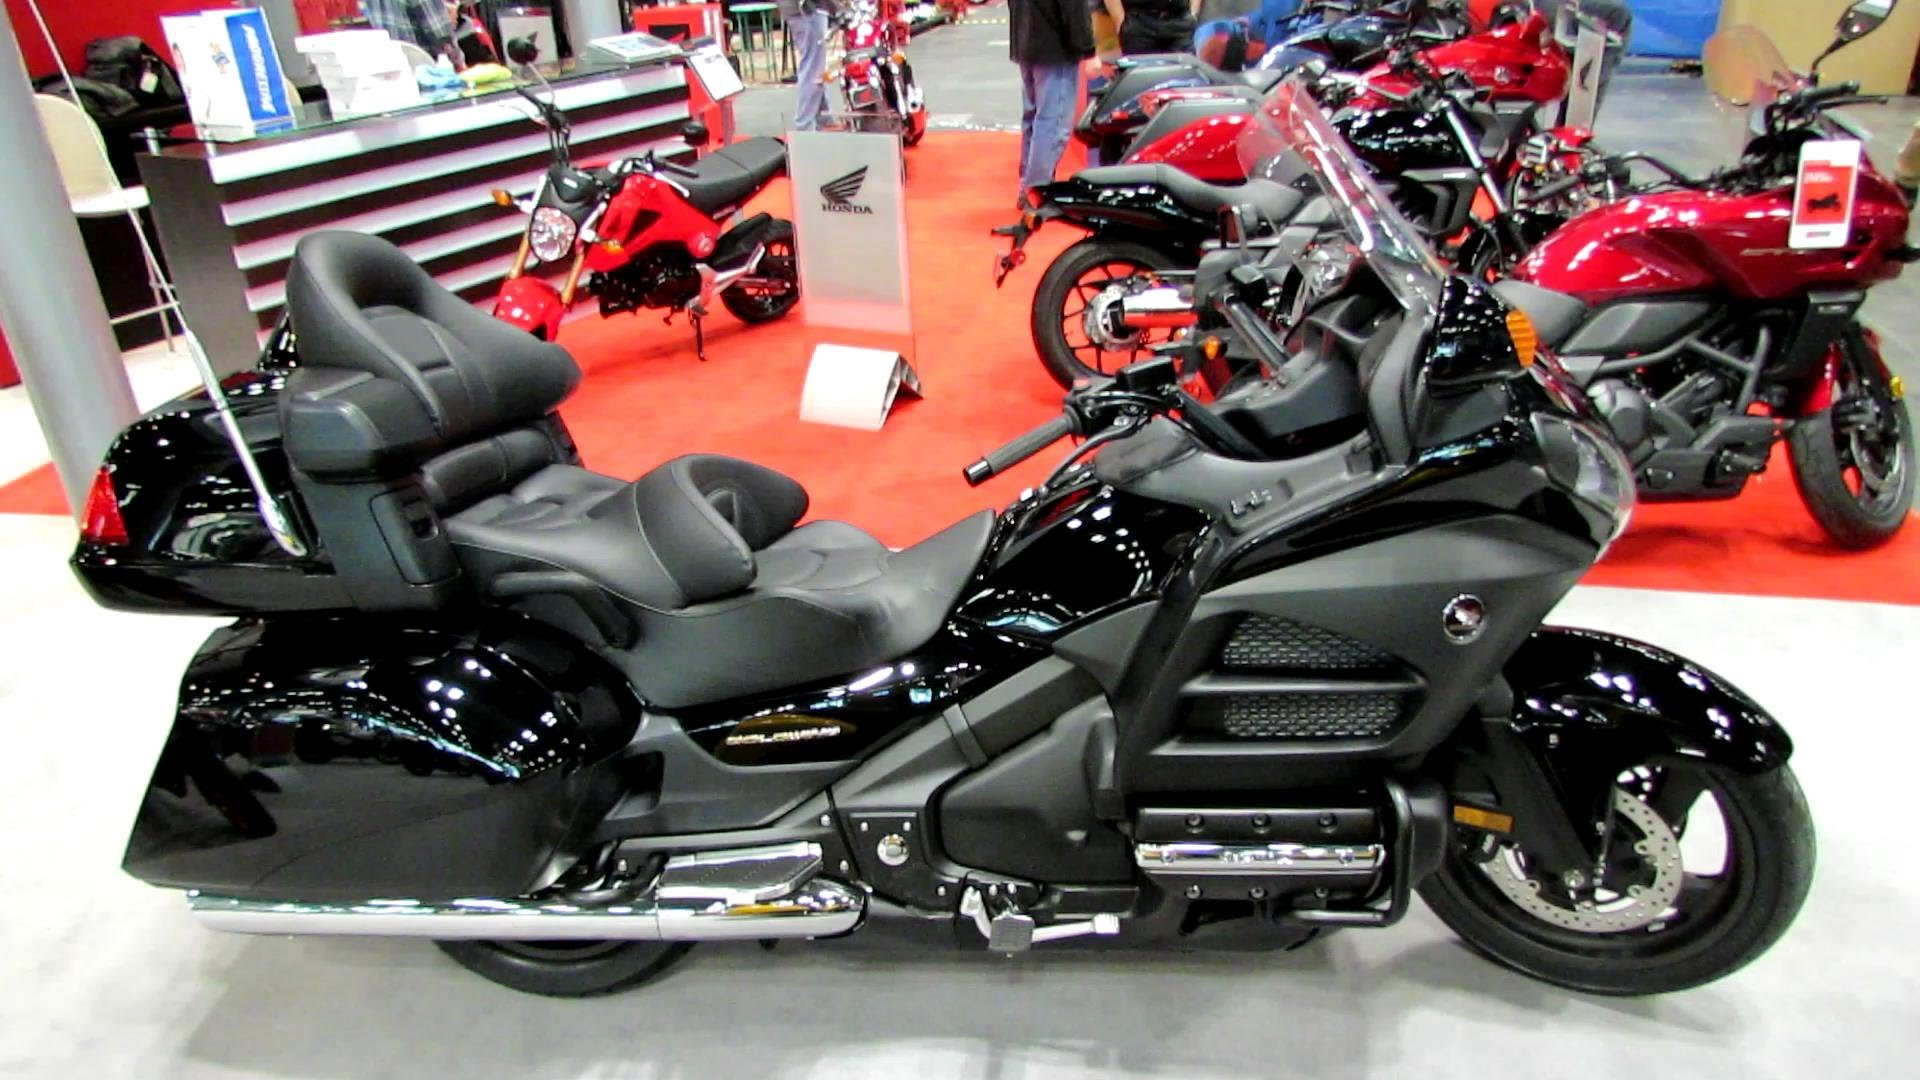 Honda GL 1800 Gold Wing 2013 images #83175